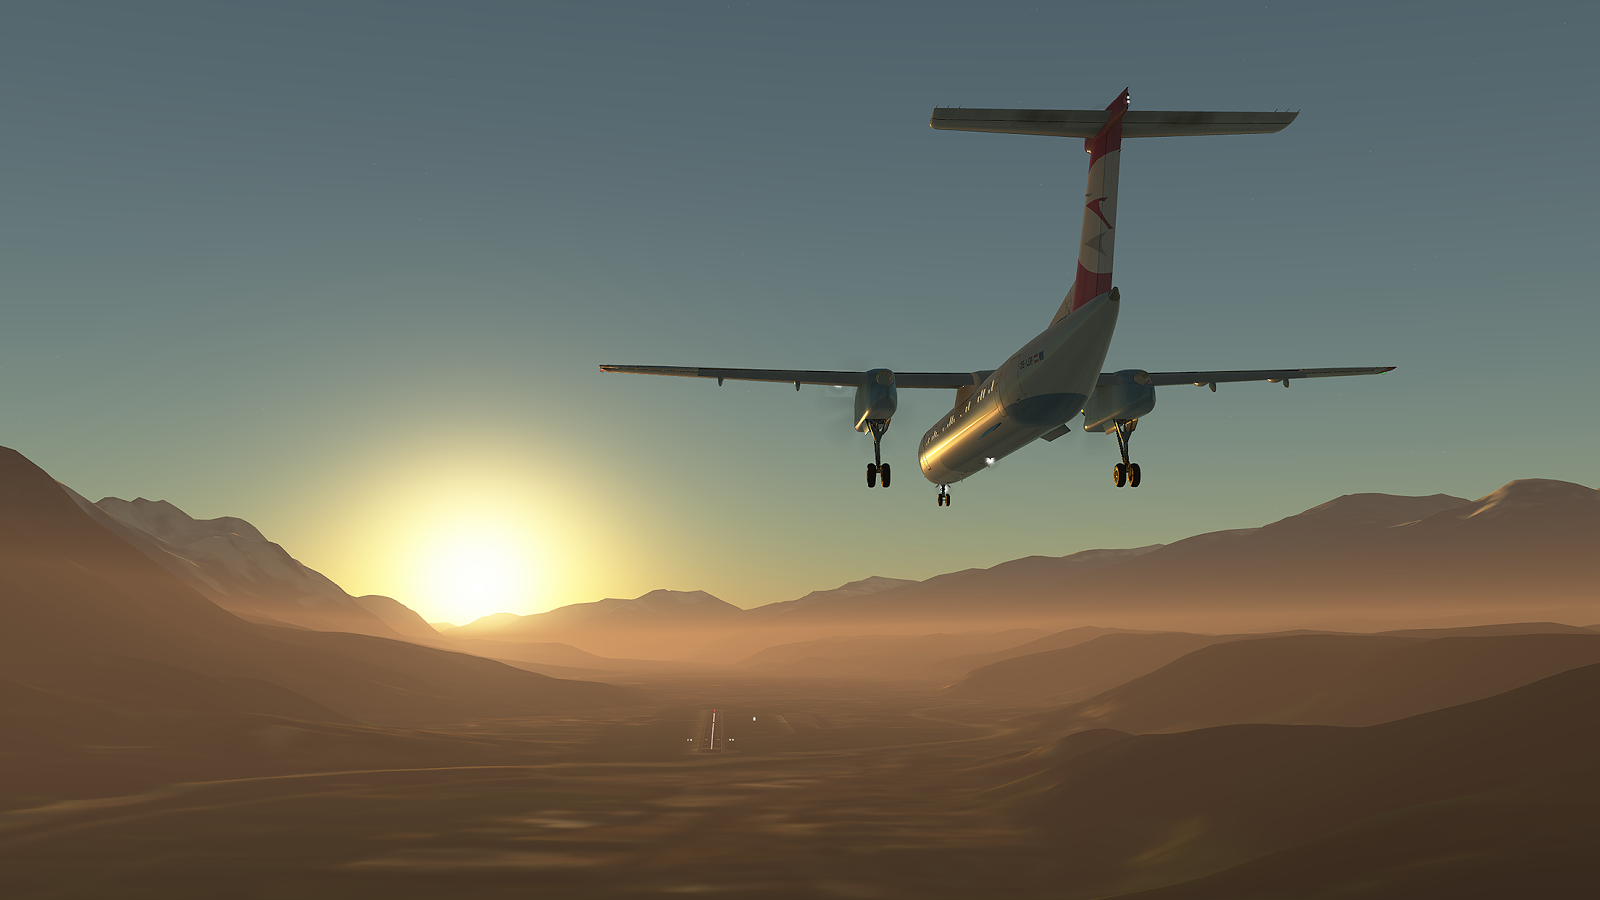 Infinite Flight - Flight Simulator Screenshot 6